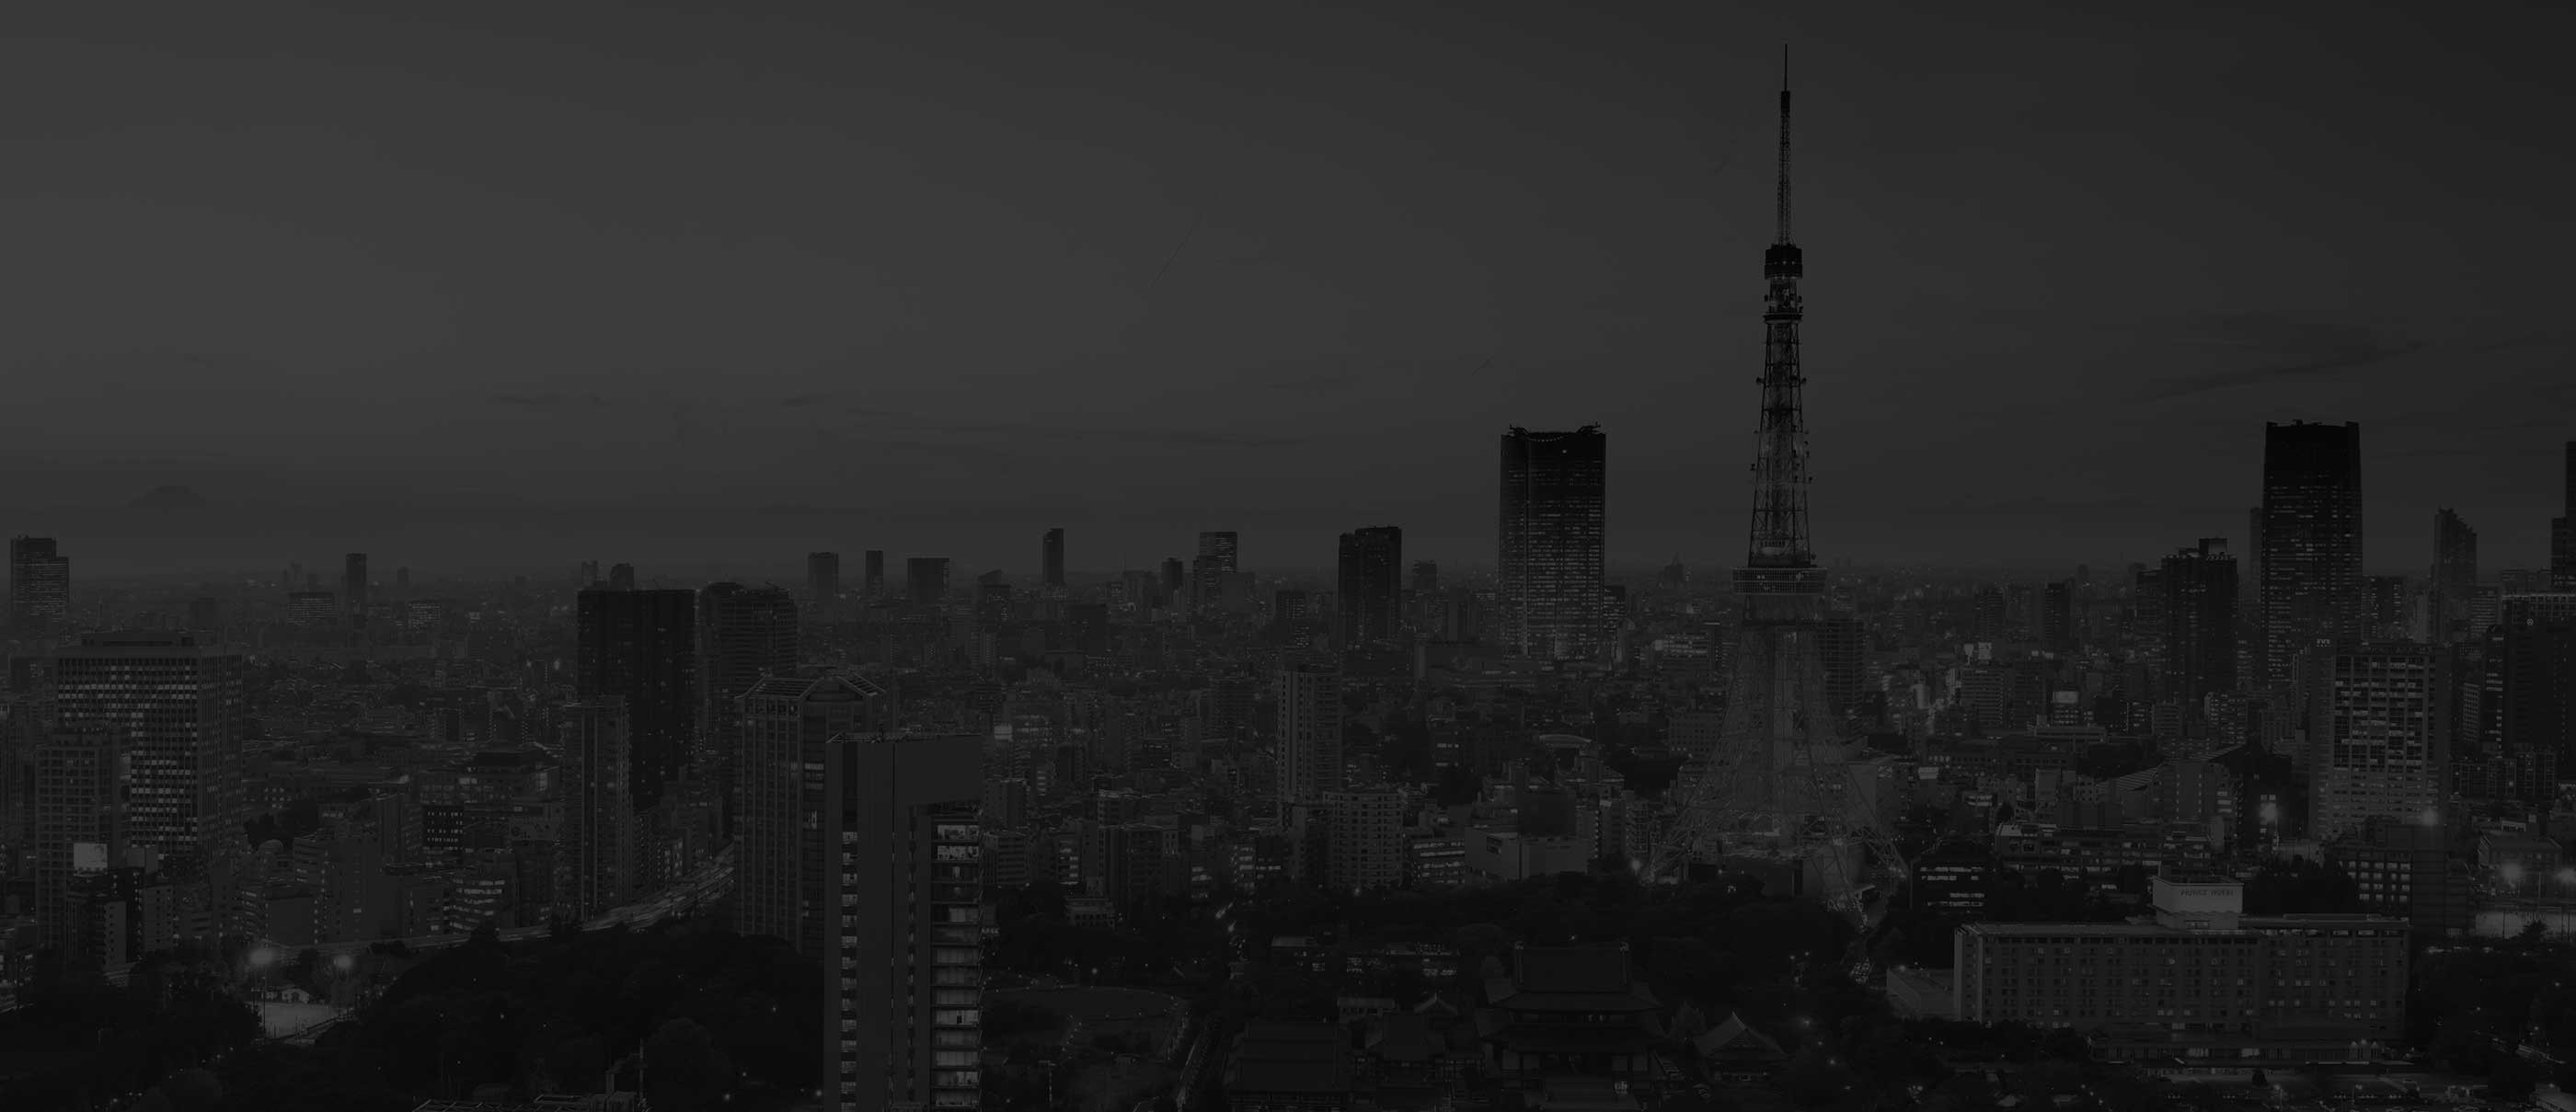 Kaleida: Is Tokyo 2020 Japan's Chance for a Second Infrastructure Revolution? Banner